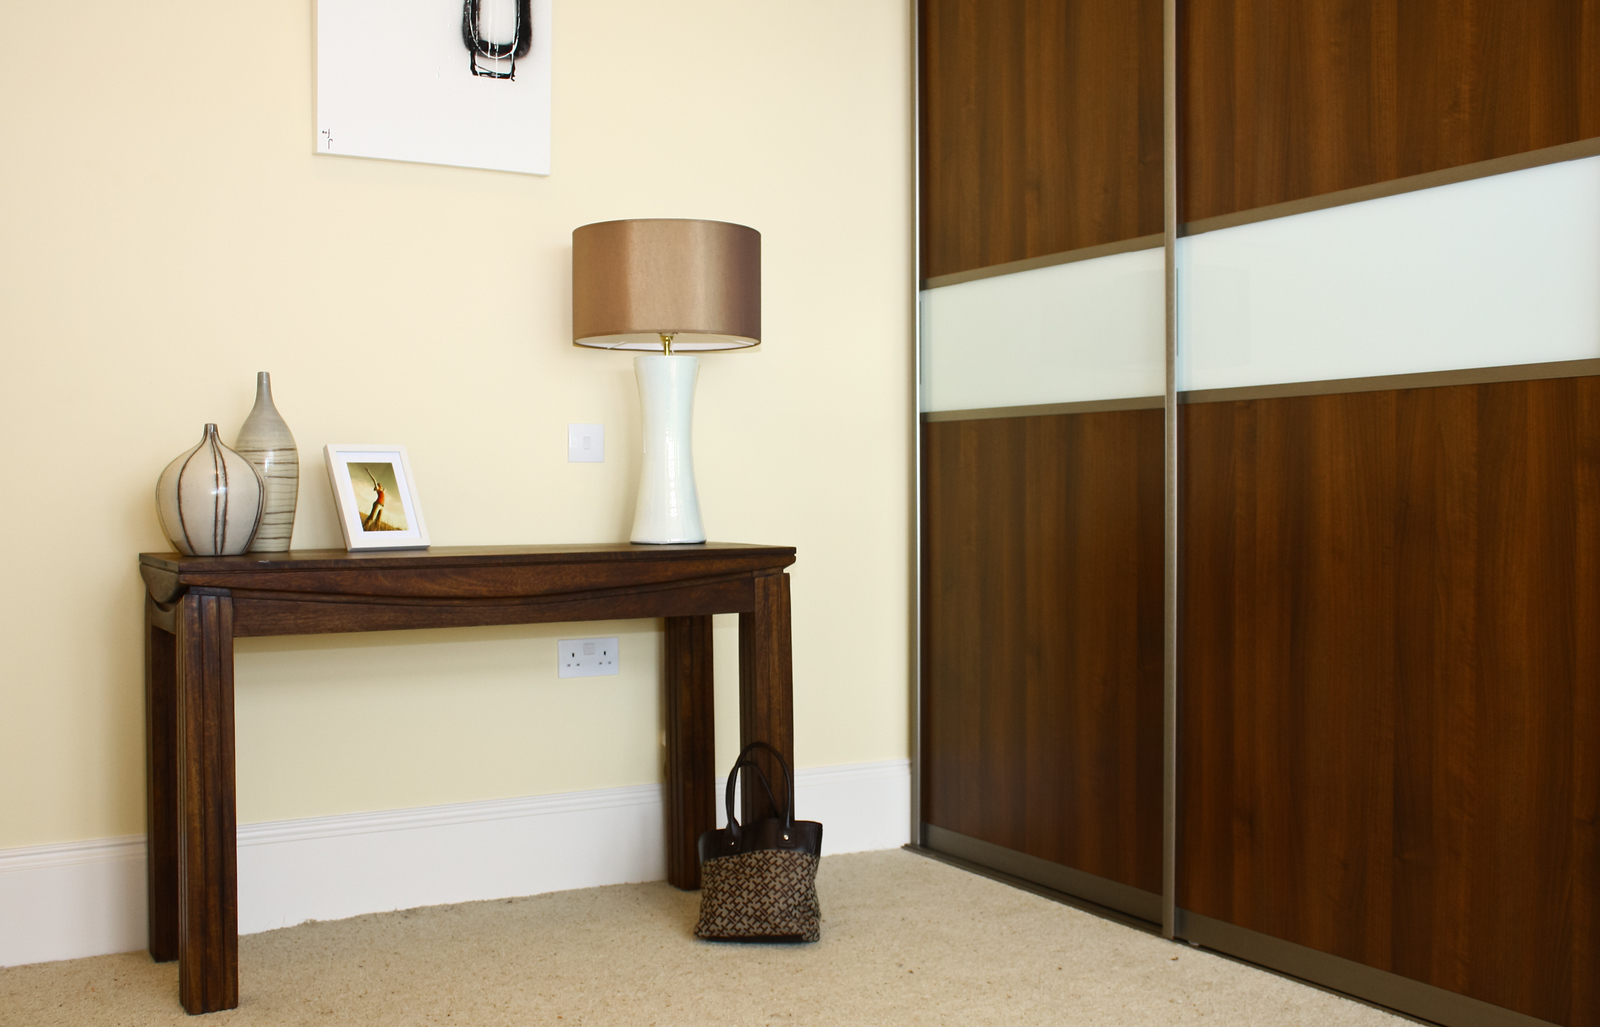 Wood-effect panels combine with white glass